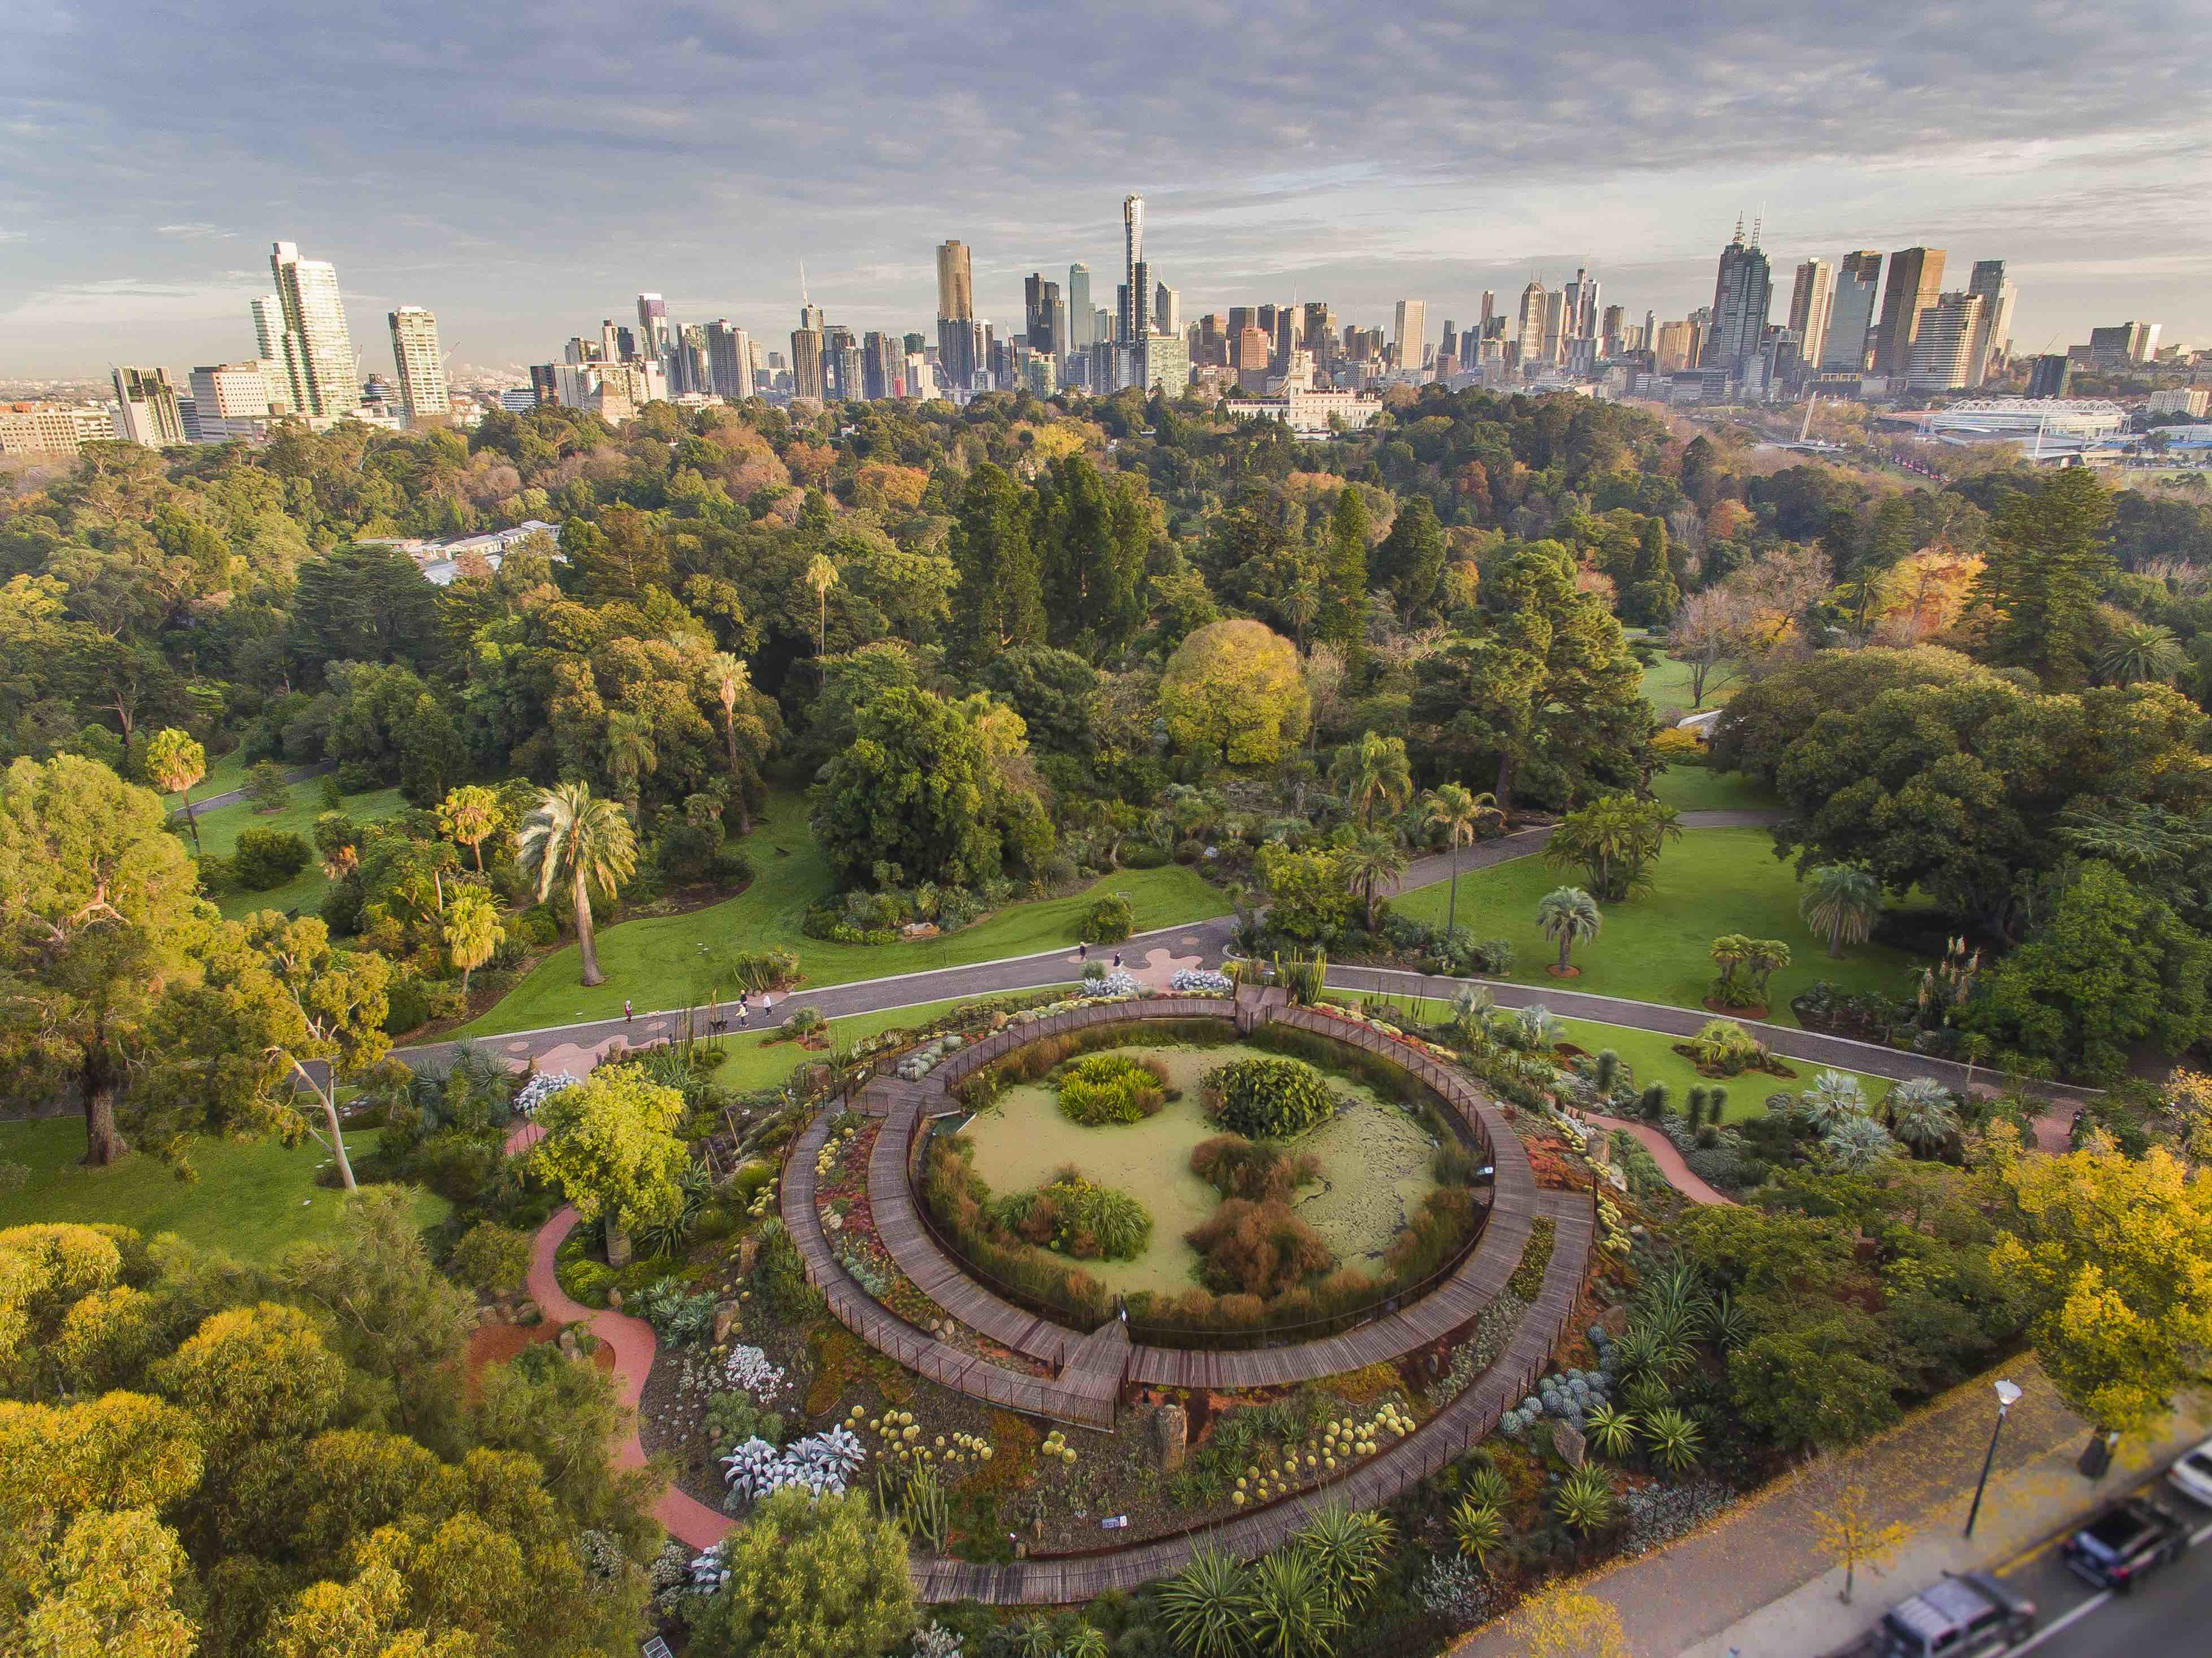 The best parks in Melbourne